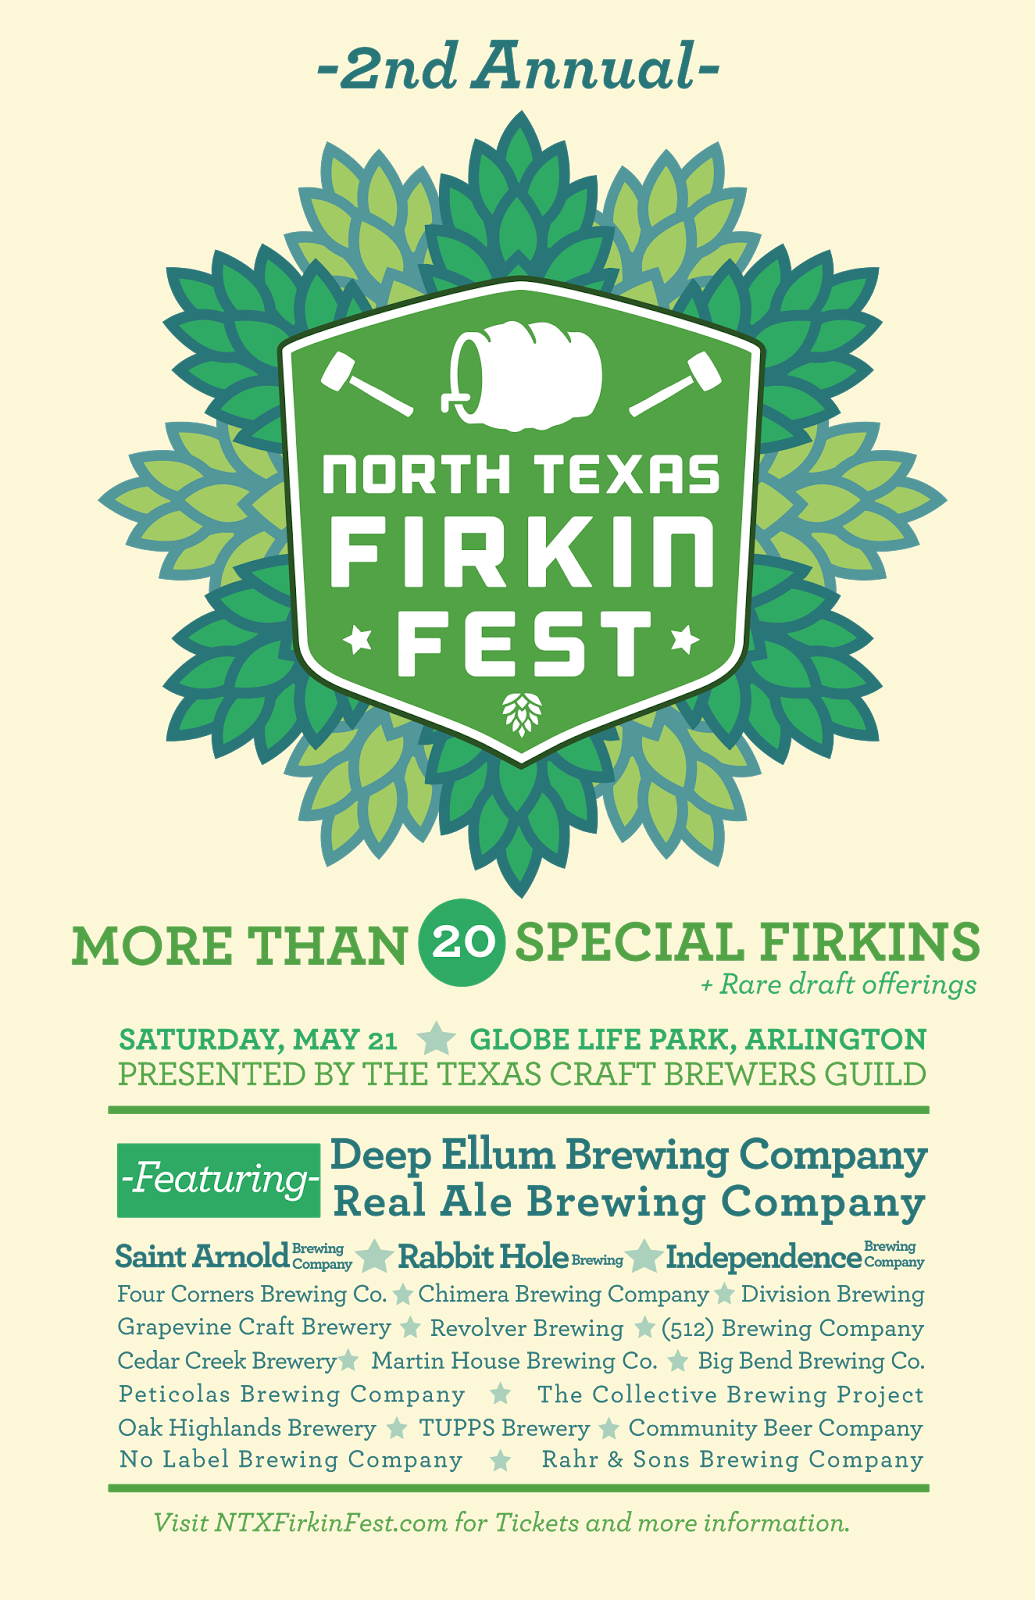 North texas firkin fest returns to globe life park may 21 for Texas craft brewers festival